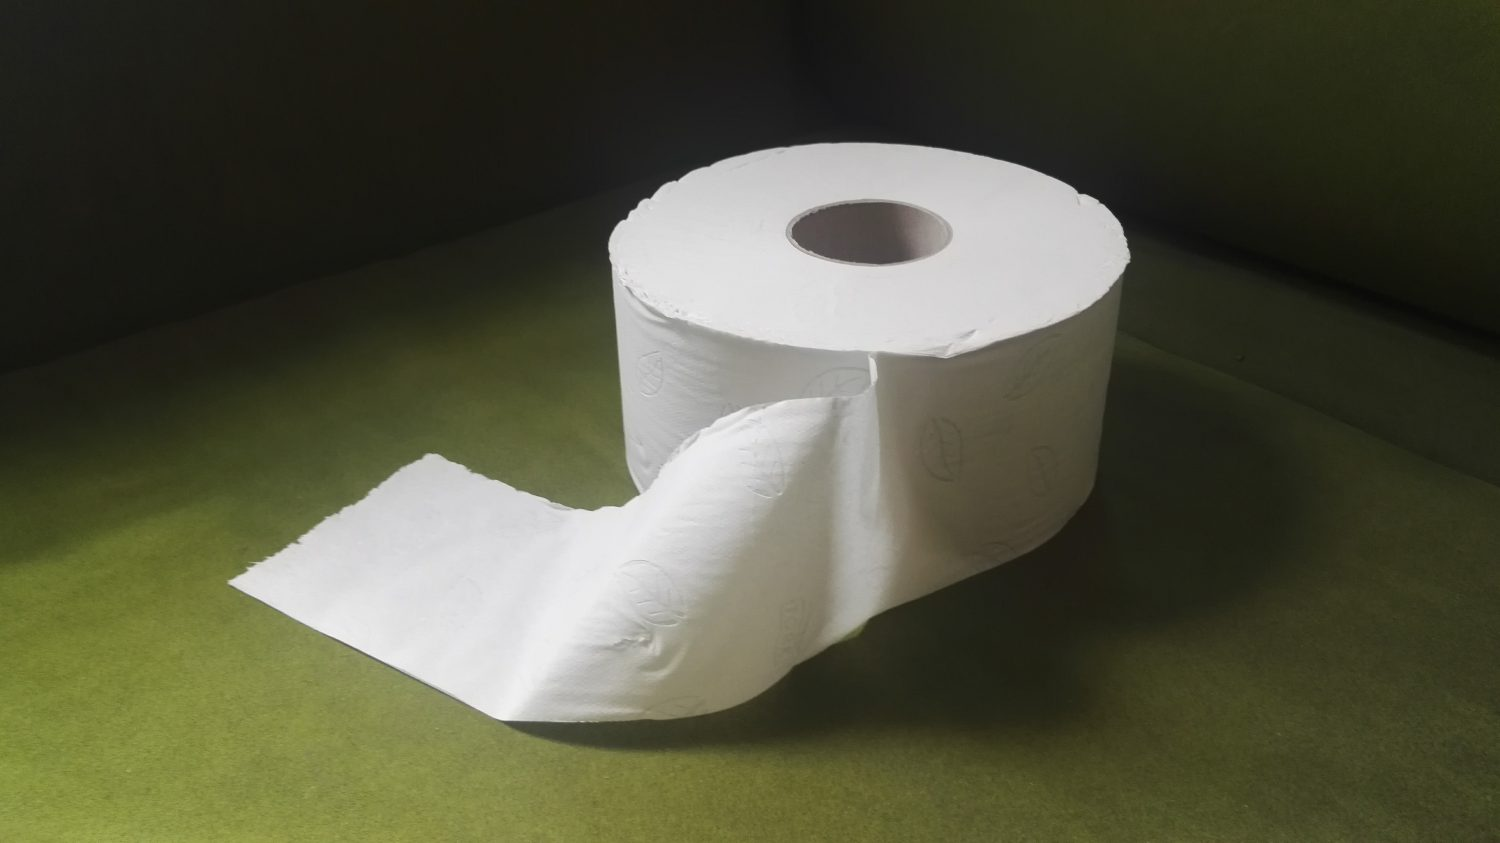 How to Brand Toilet Paper How to